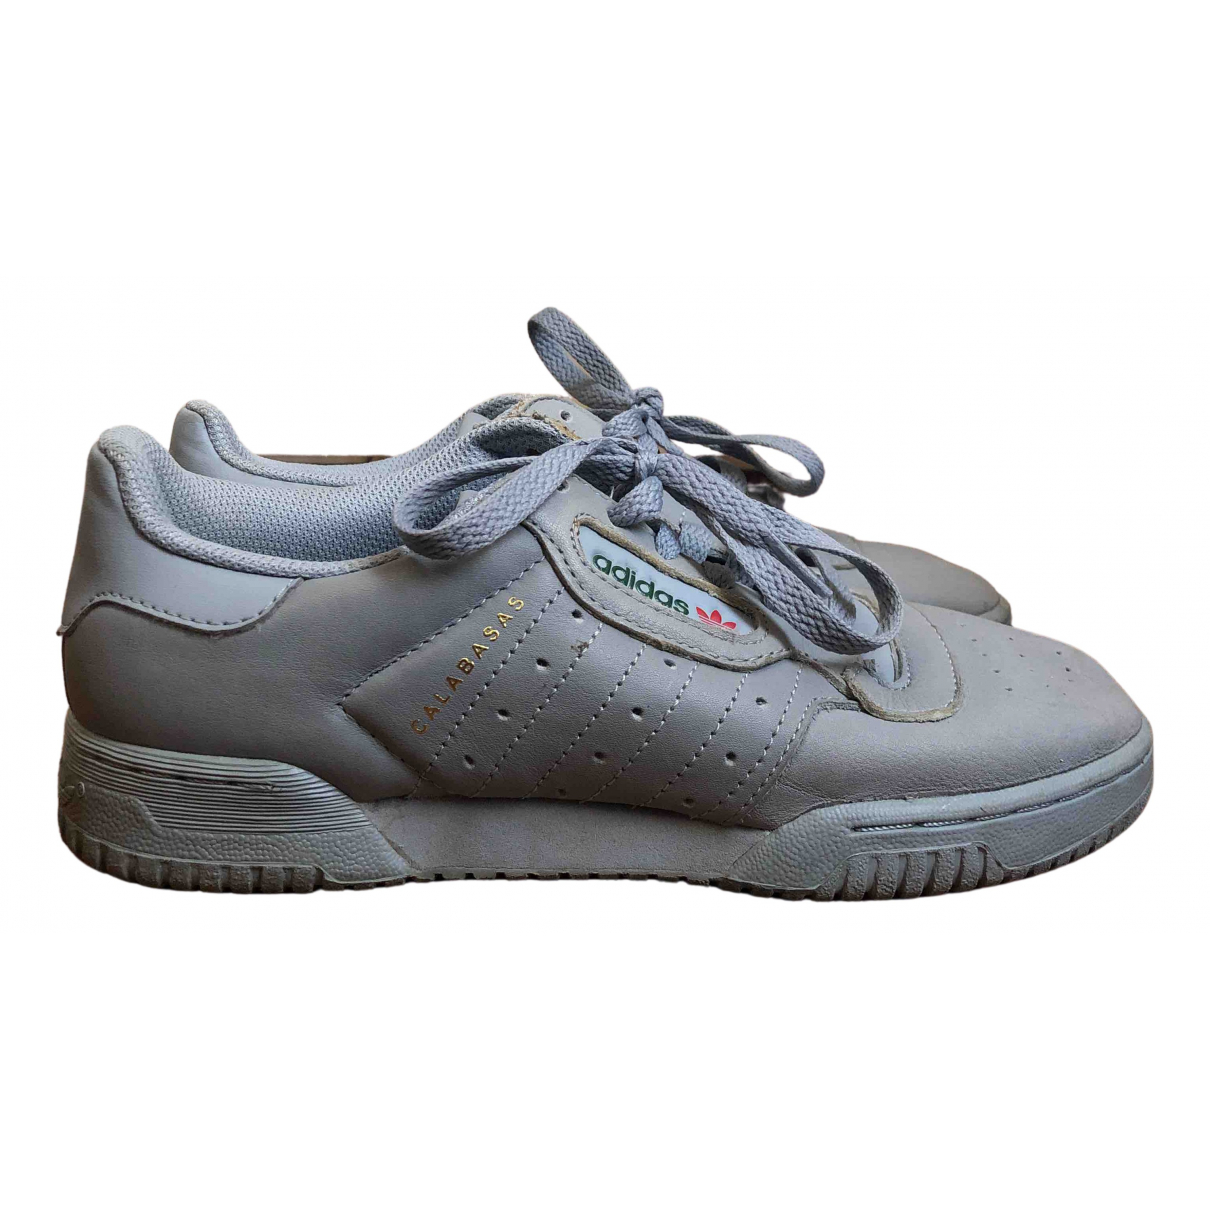 Yeezy X Adidas - Baskets POWERPHASE pour femme - gris